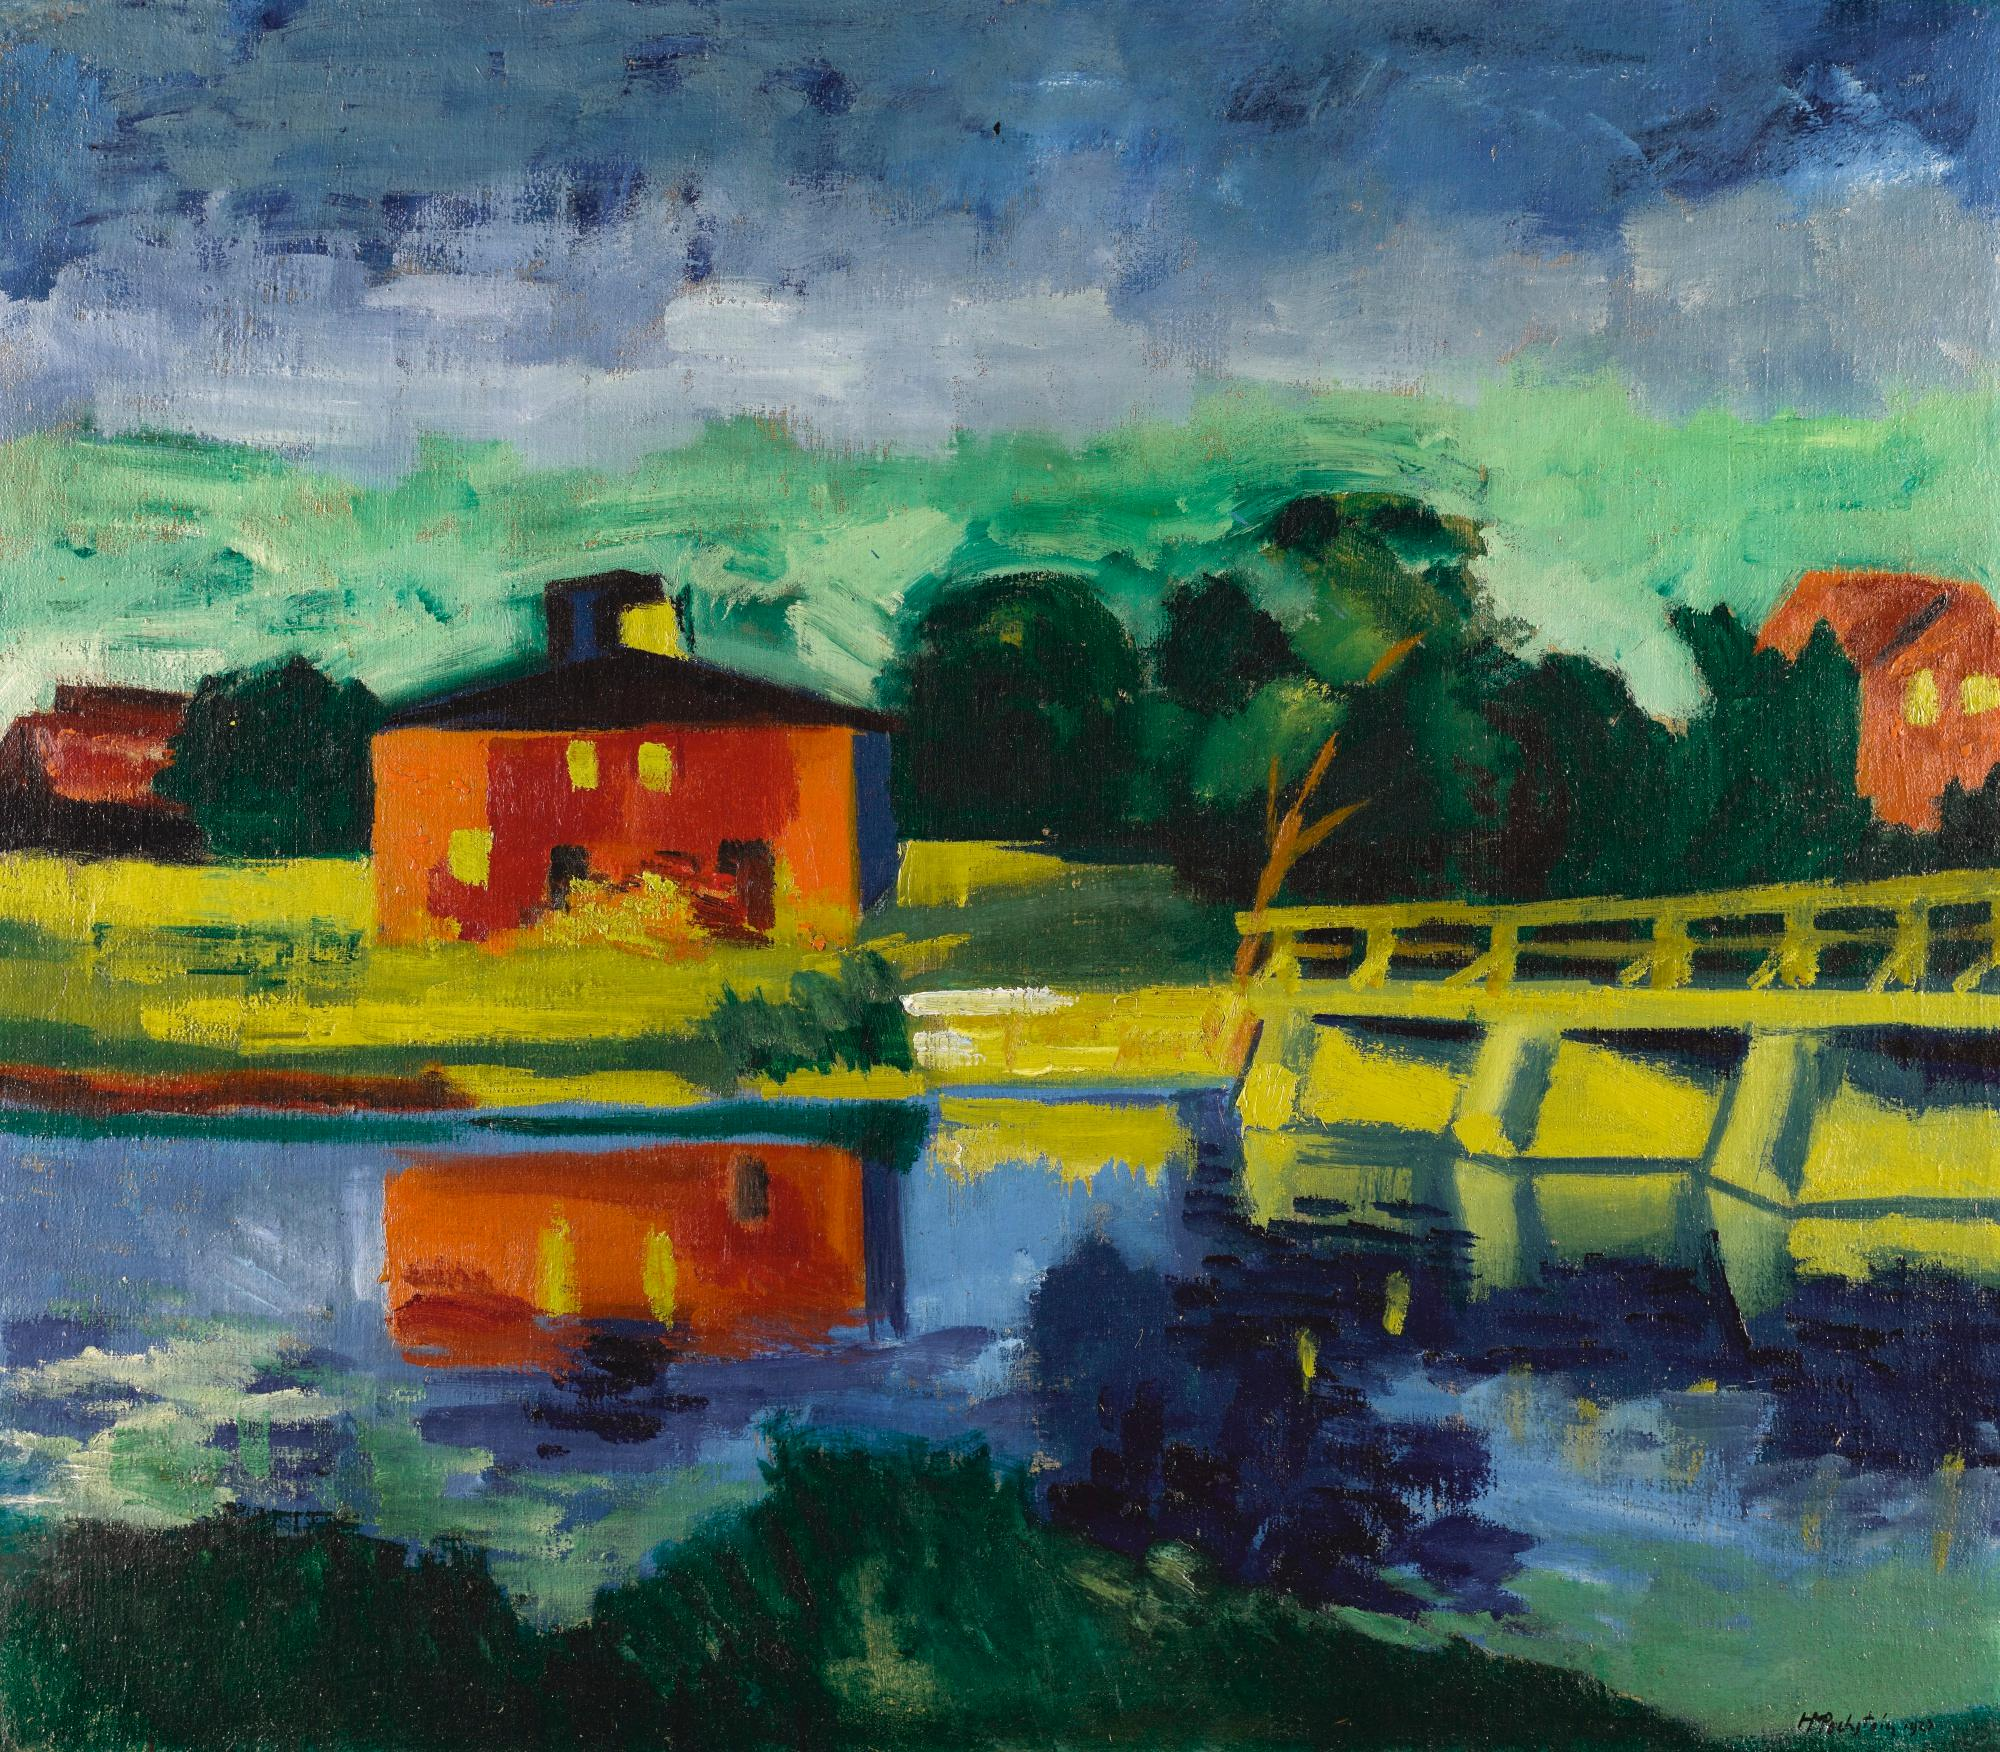 Am Fluss (At The River) by Max Pechstein